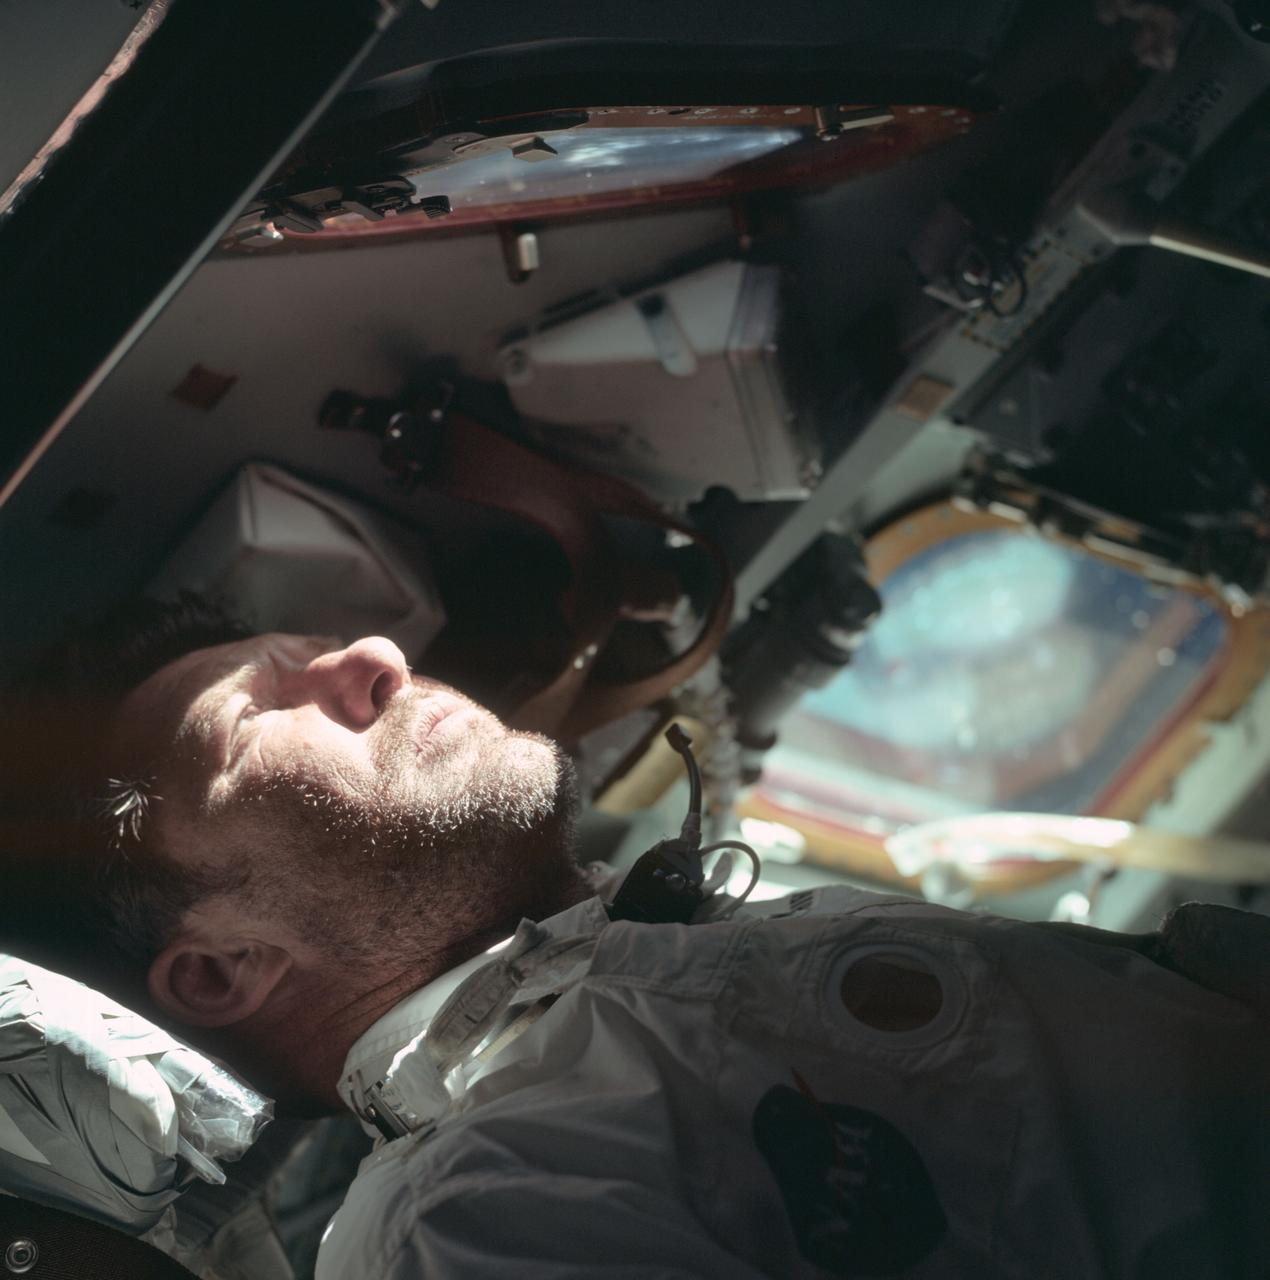 Apollo 7 commander Walter Schirra looks out the rendezvous window on the 9th day of the mission.